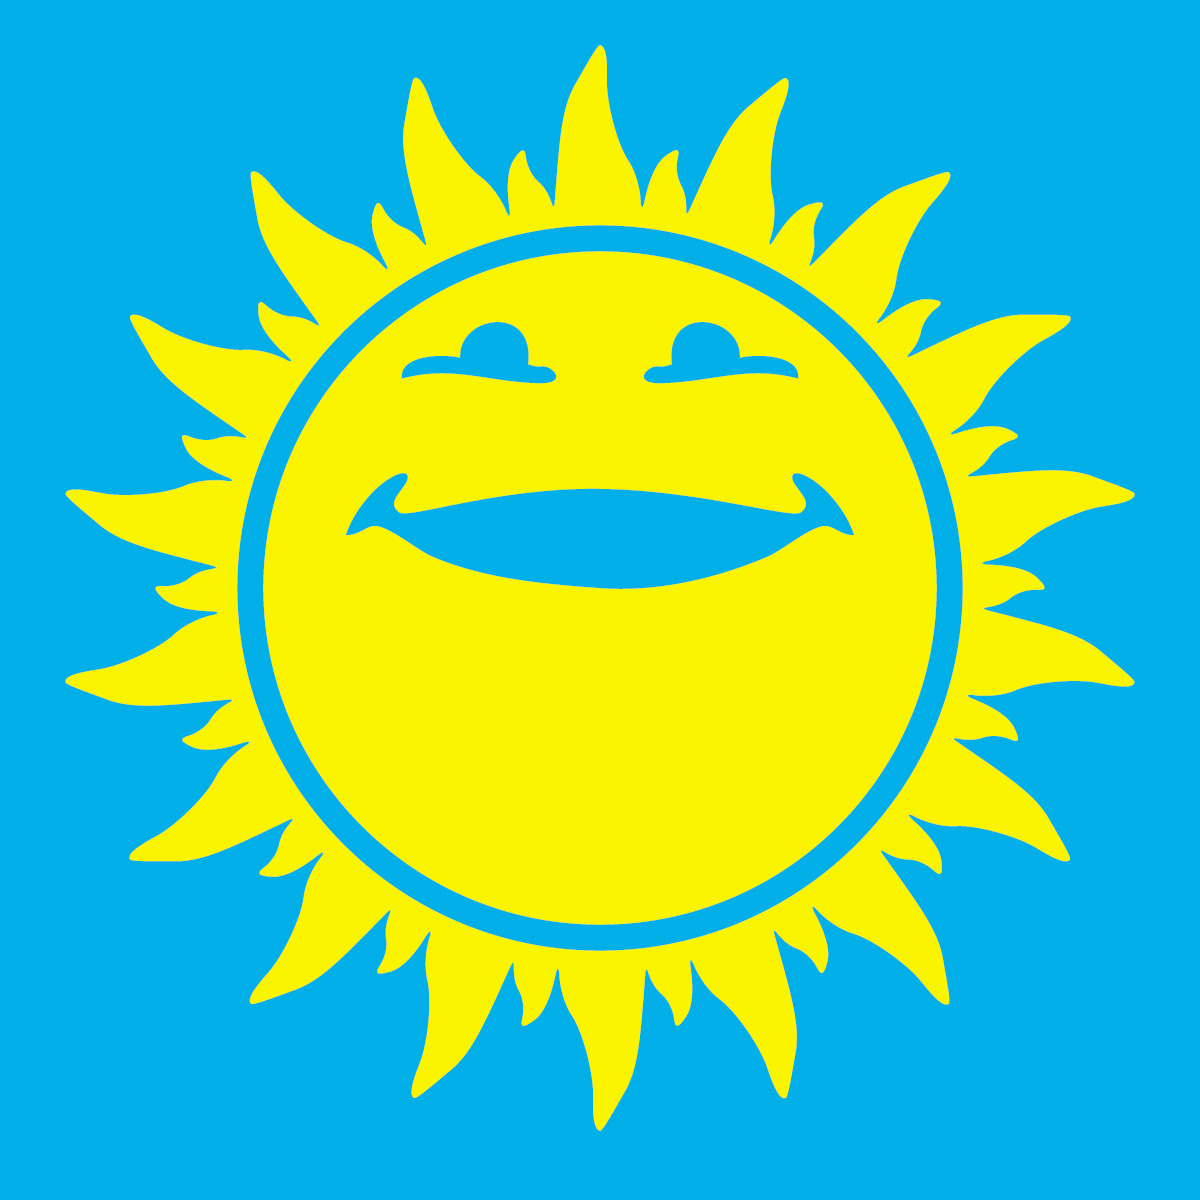 Royalty free clipart sunshine. Smiling sun panda images